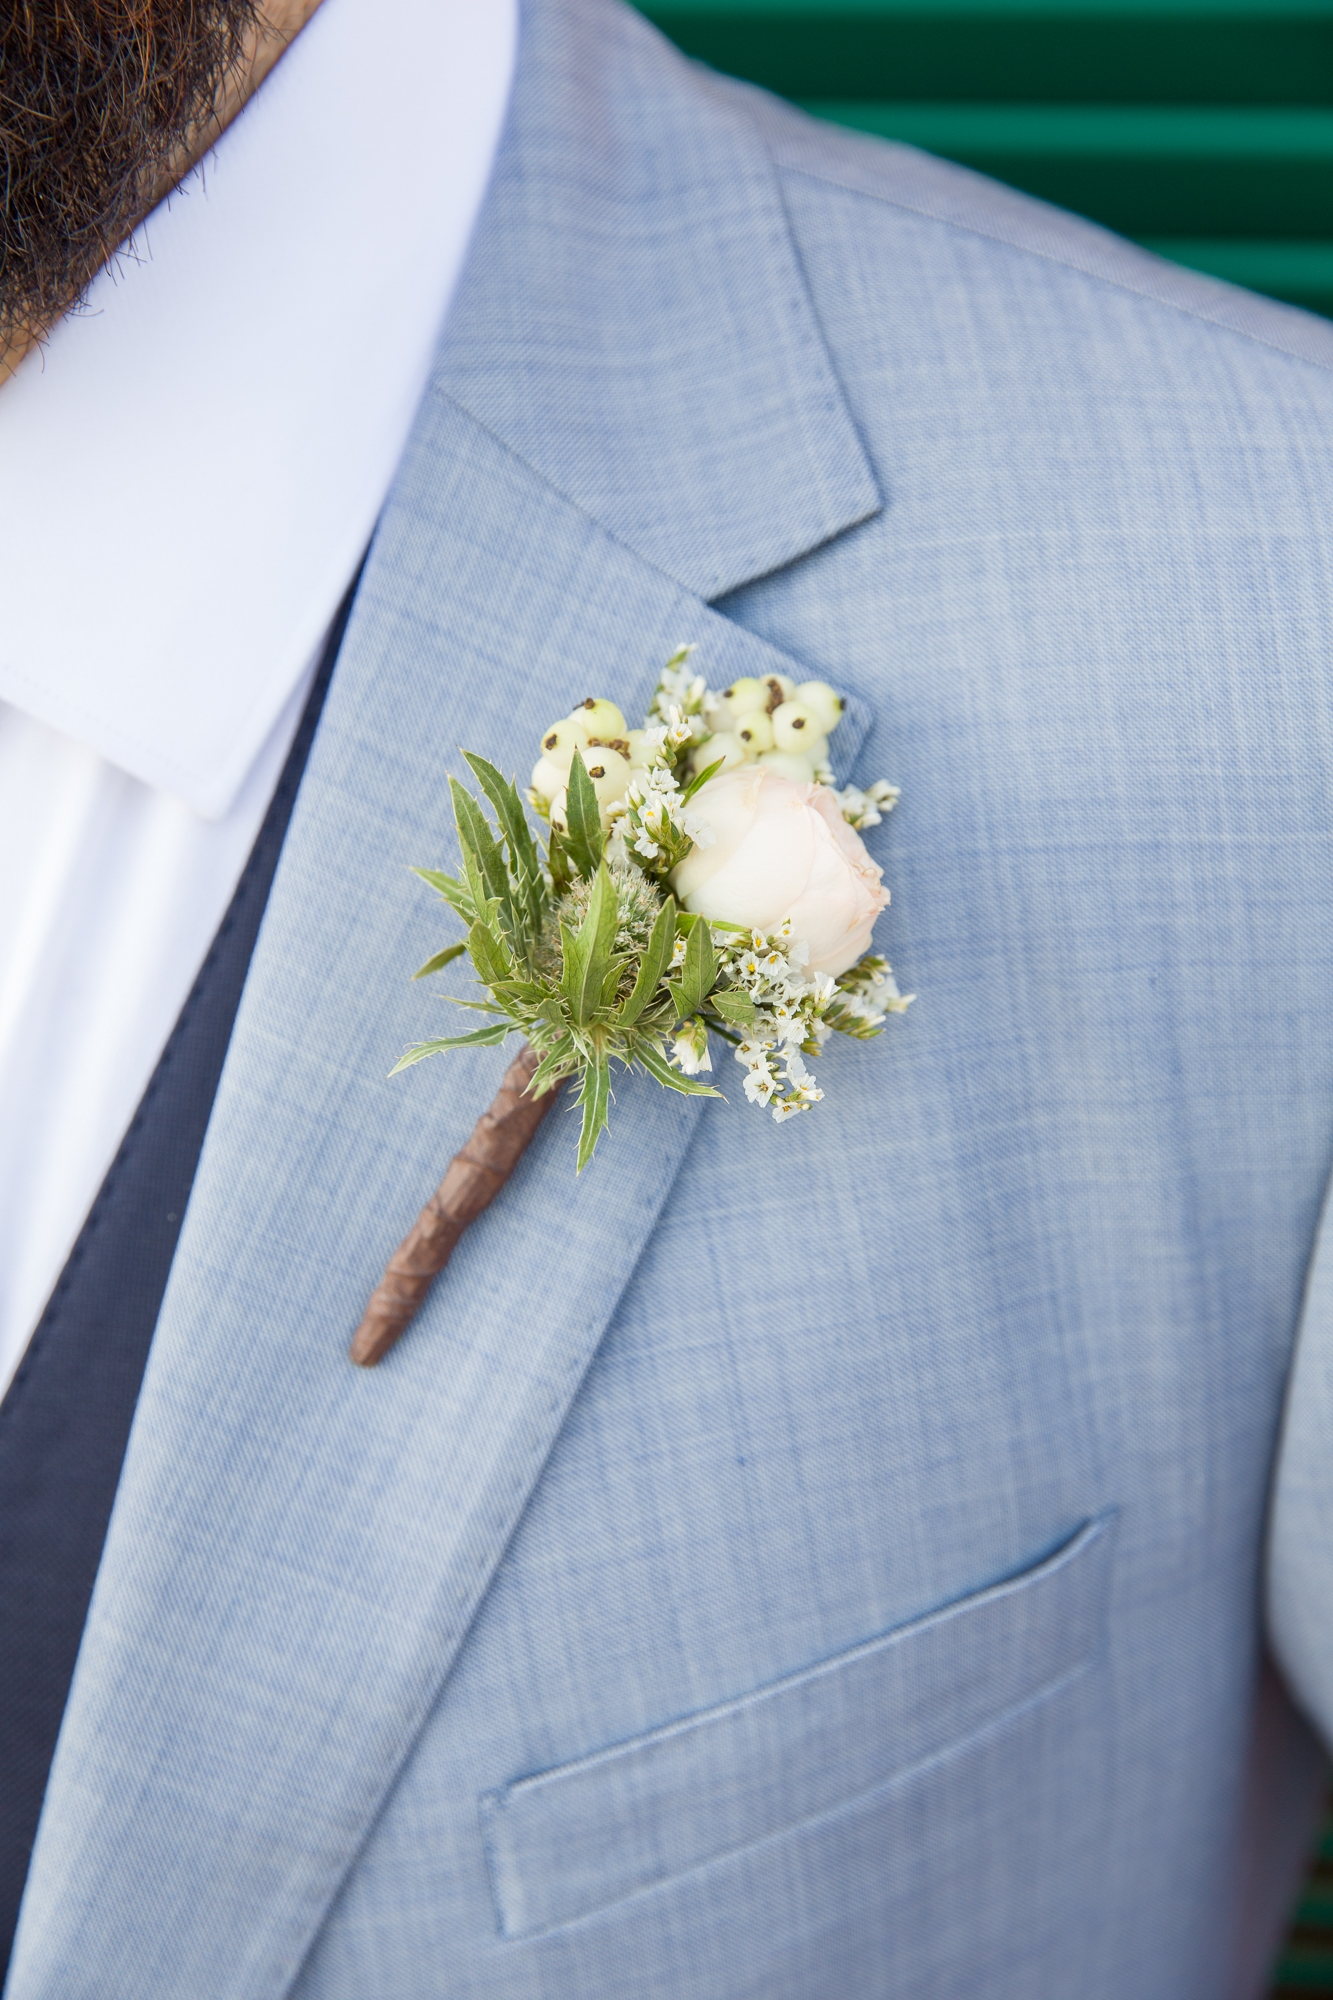 Buttonhole by La Toscana in Denia, Spain